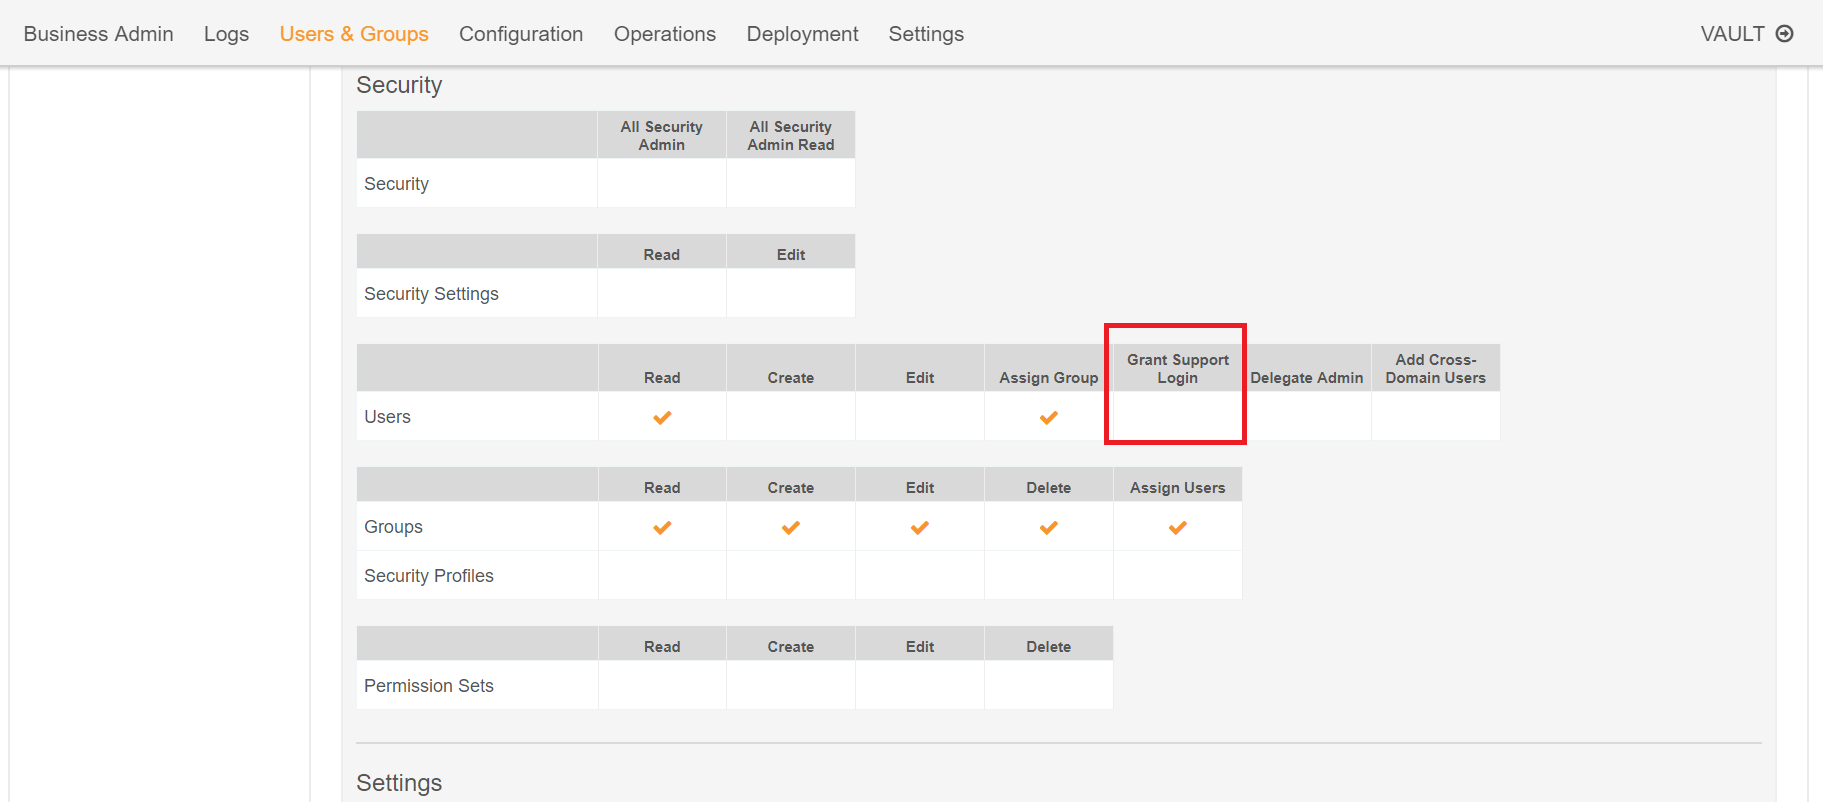 Unable To Grant Support Login Access From User Detail Page In Vault Veeva Product Support Portal